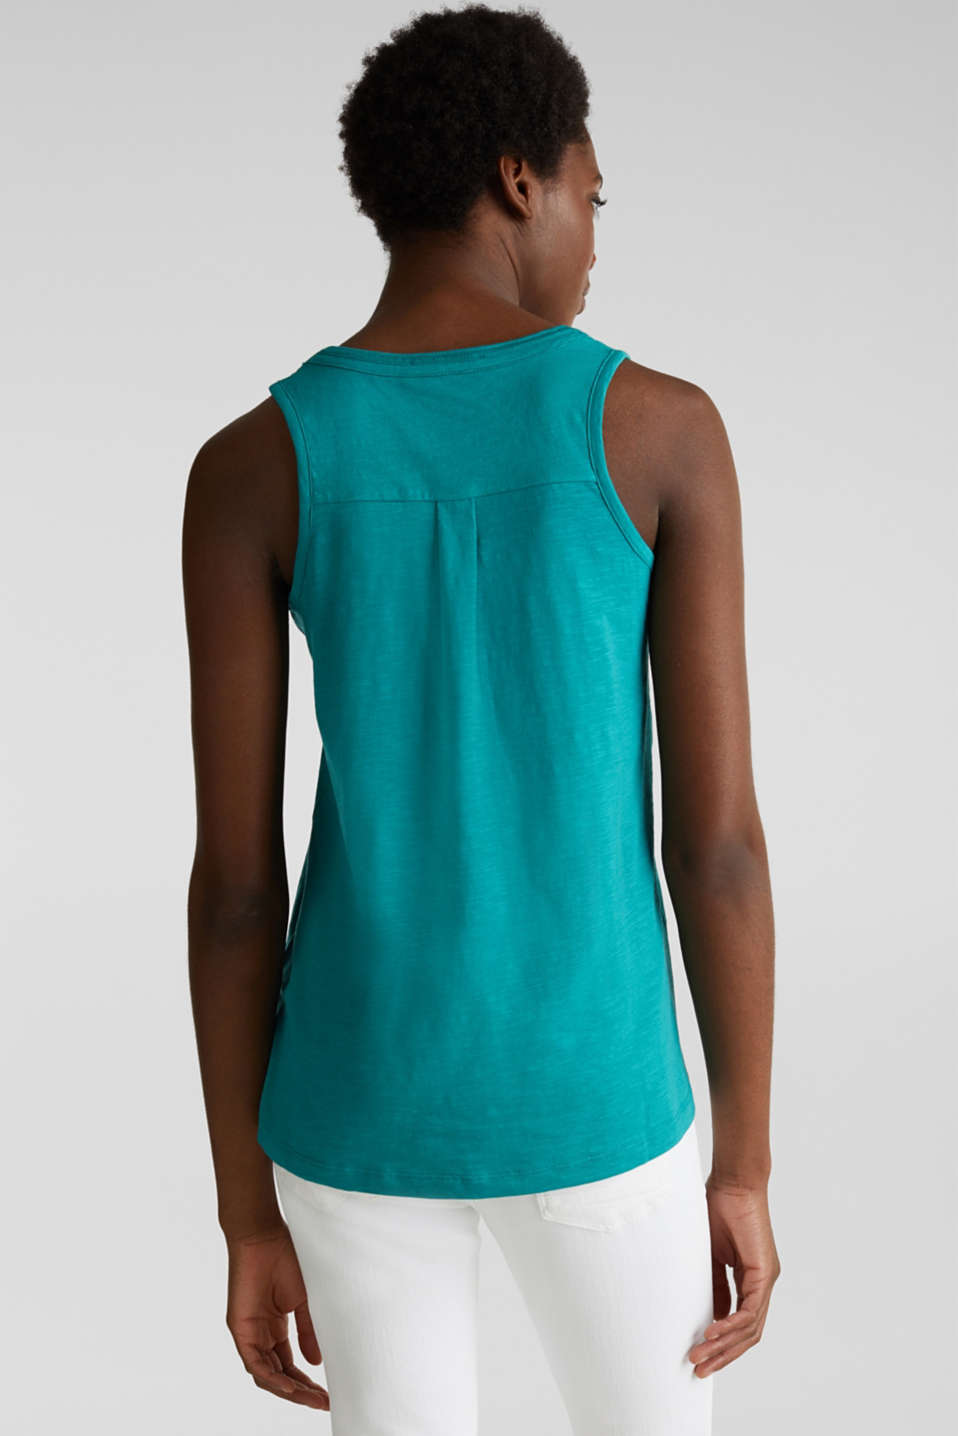 A-line sleeveless top made of 100% organic cotton, TEAL GREEN, detail image number 2